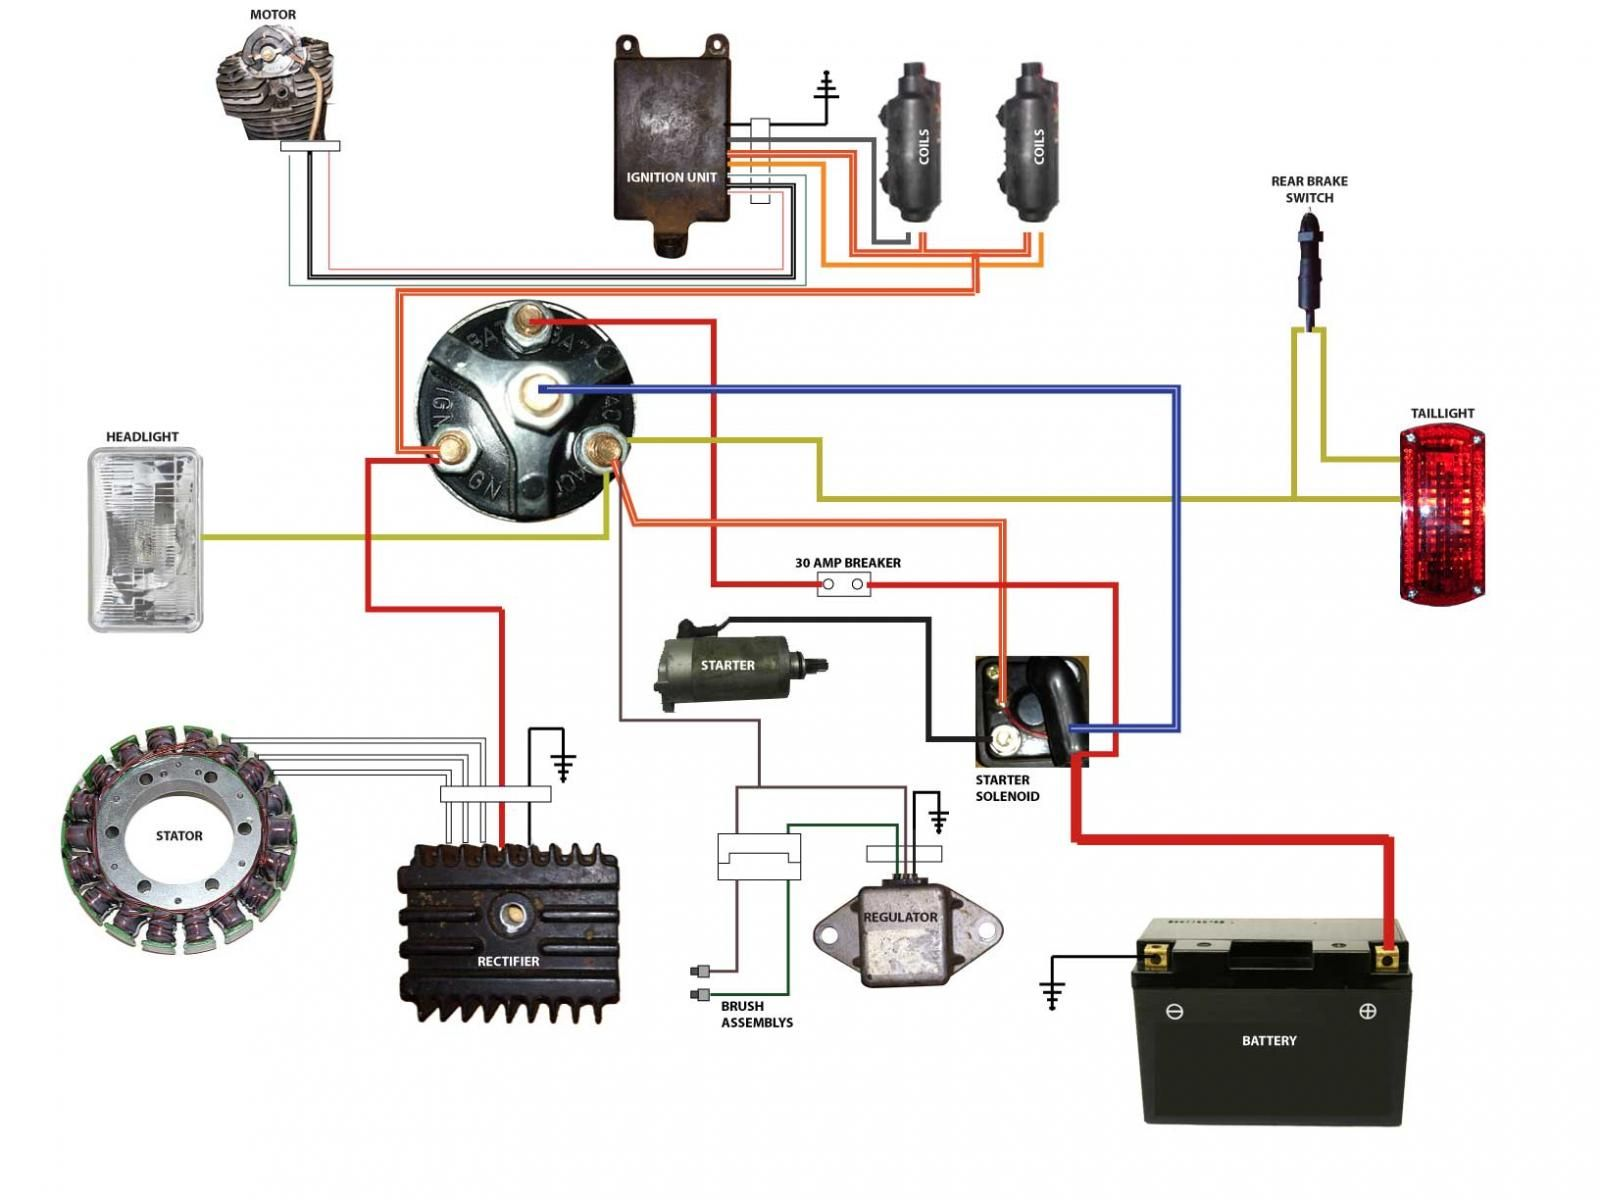 simplified wiring diagram for xs400 cafe | Projects to Try ... on sincgars radio configurations diagrams, led circuit diagrams, engine diagrams, switch diagrams, friendship bracelet diagrams, pinout diagrams, smart car diagrams, electrical diagrams, motor diagrams, lighting diagrams, hvac diagrams, transformer diagrams, battery diagrams, honda motorcycle repair diagrams, electronic circuit diagrams, internet of things diagrams, series and parallel circuits diagrams, troubleshooting diagrams, gmc fuse box diagrams, snatch block diagrams,